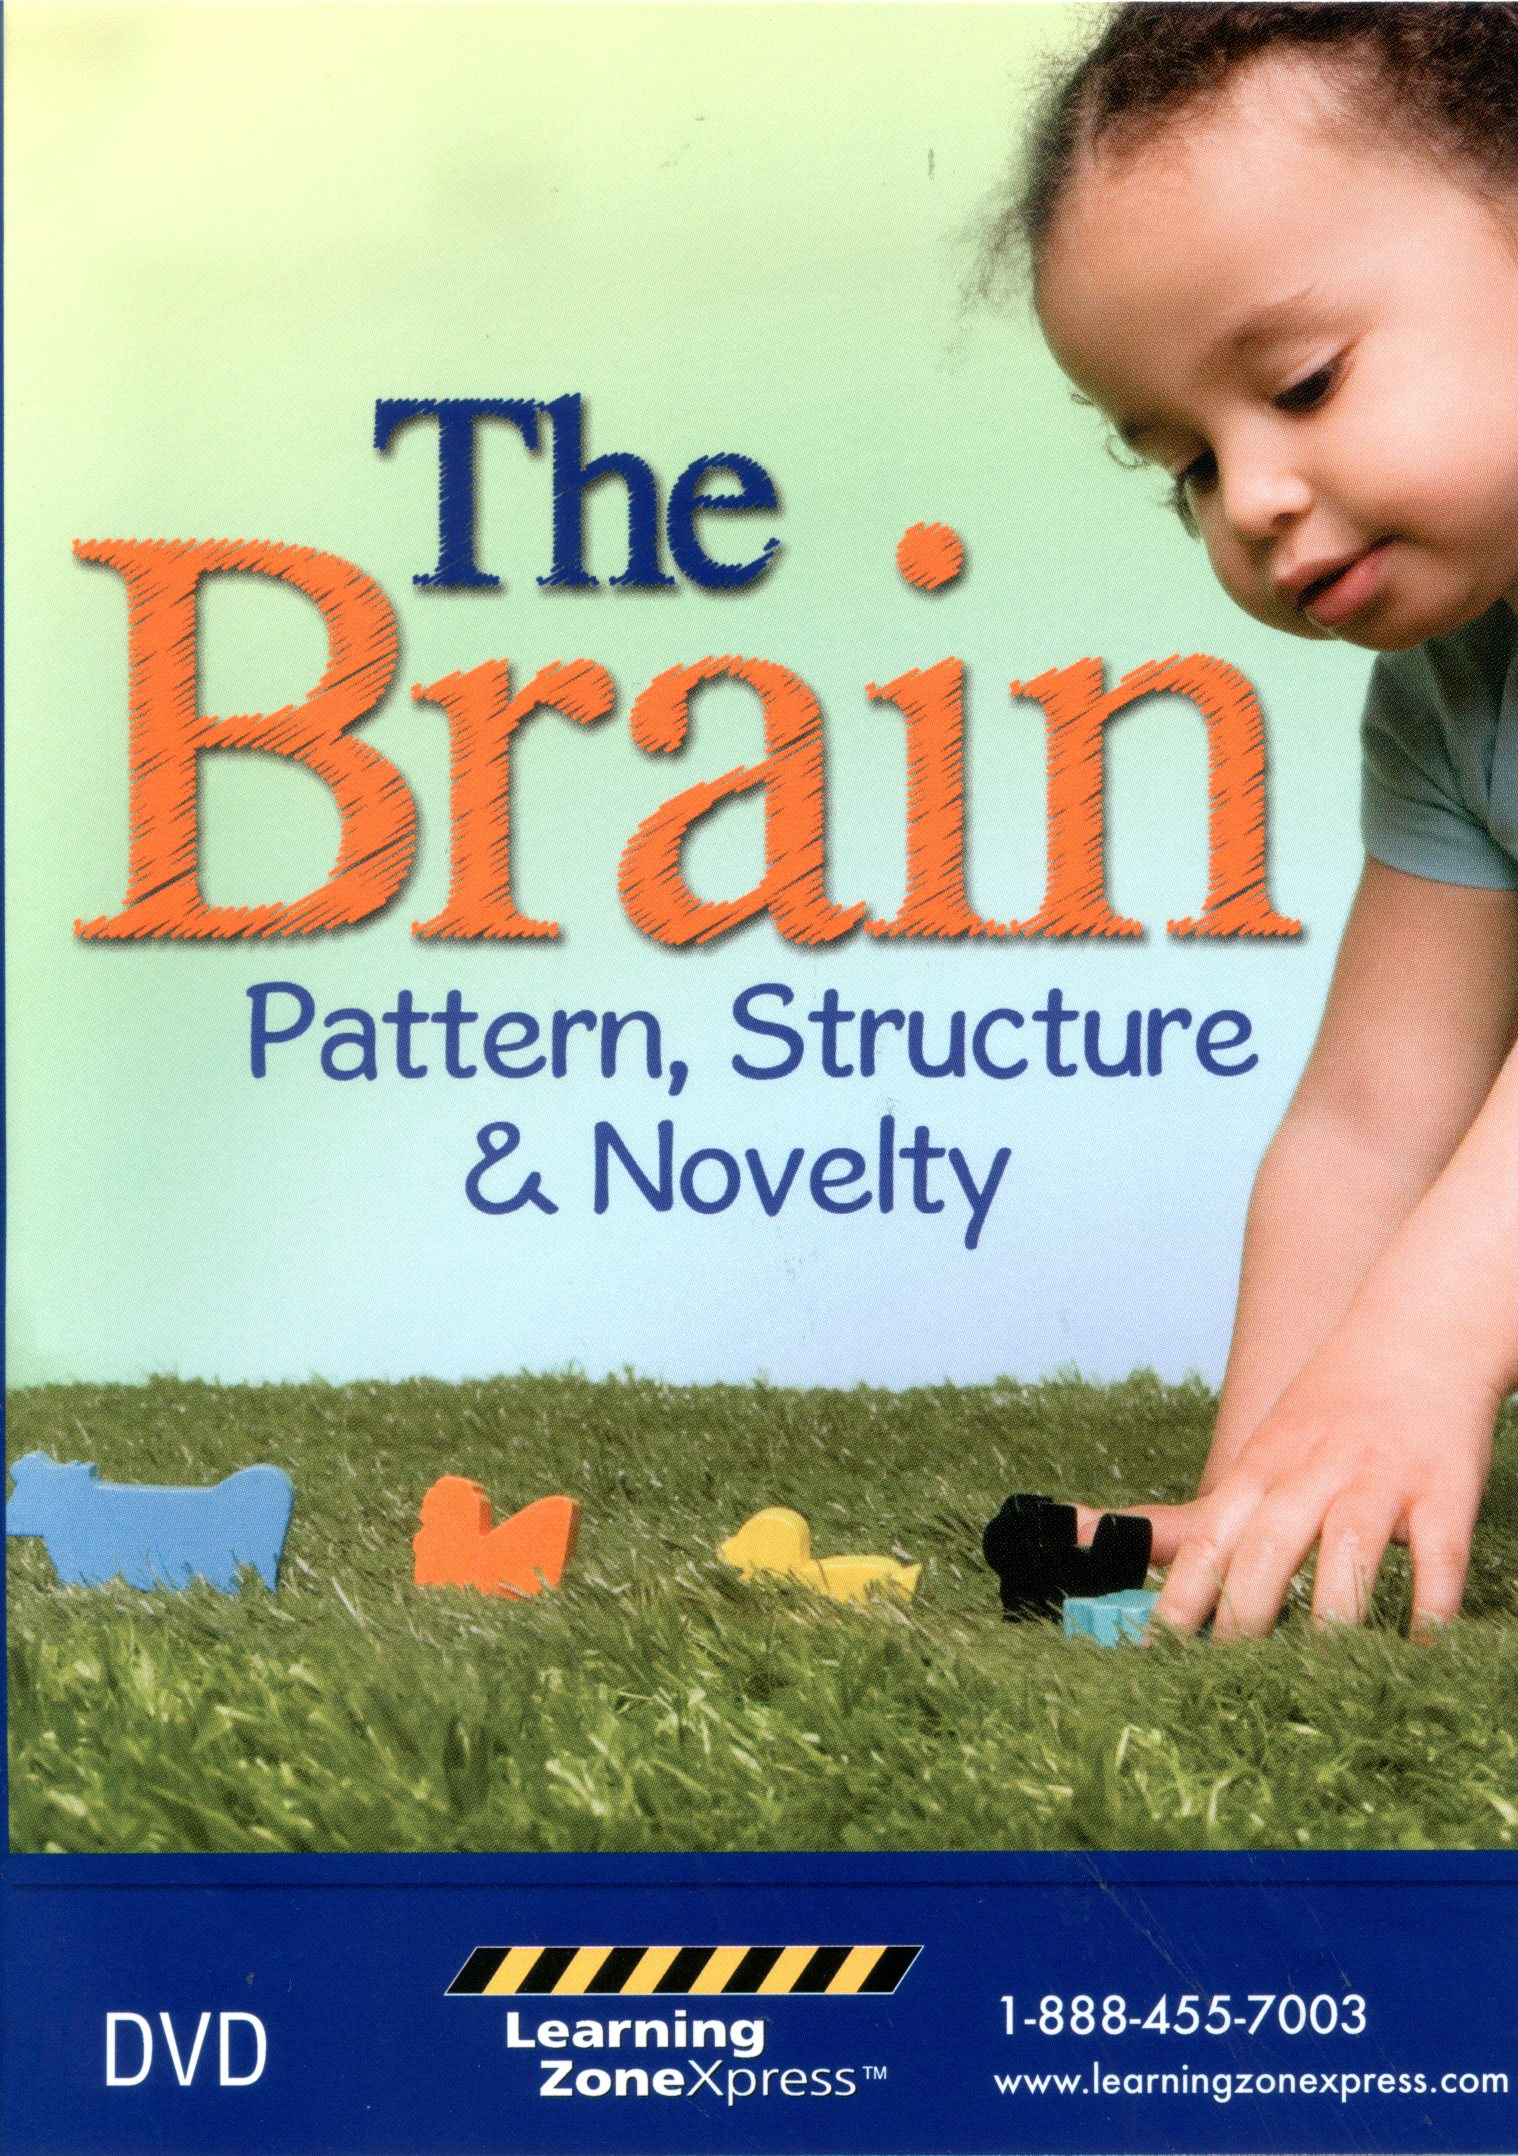 The brain pattern, structure & novelty /